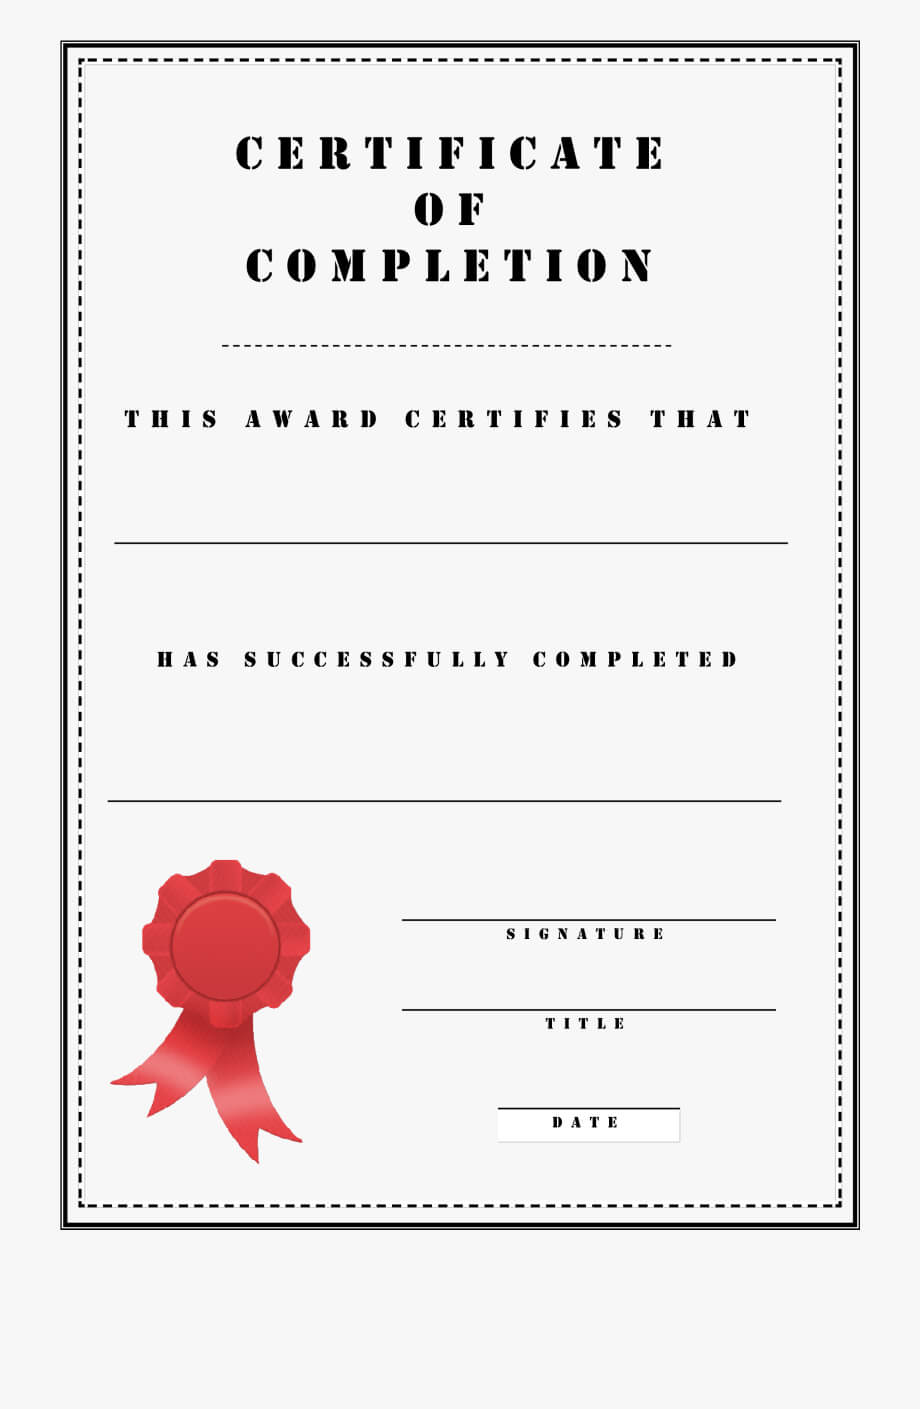 Clip Art Printable Employee Of The Month Certificate Pertaining To Employee Of The Month Certificate Templates